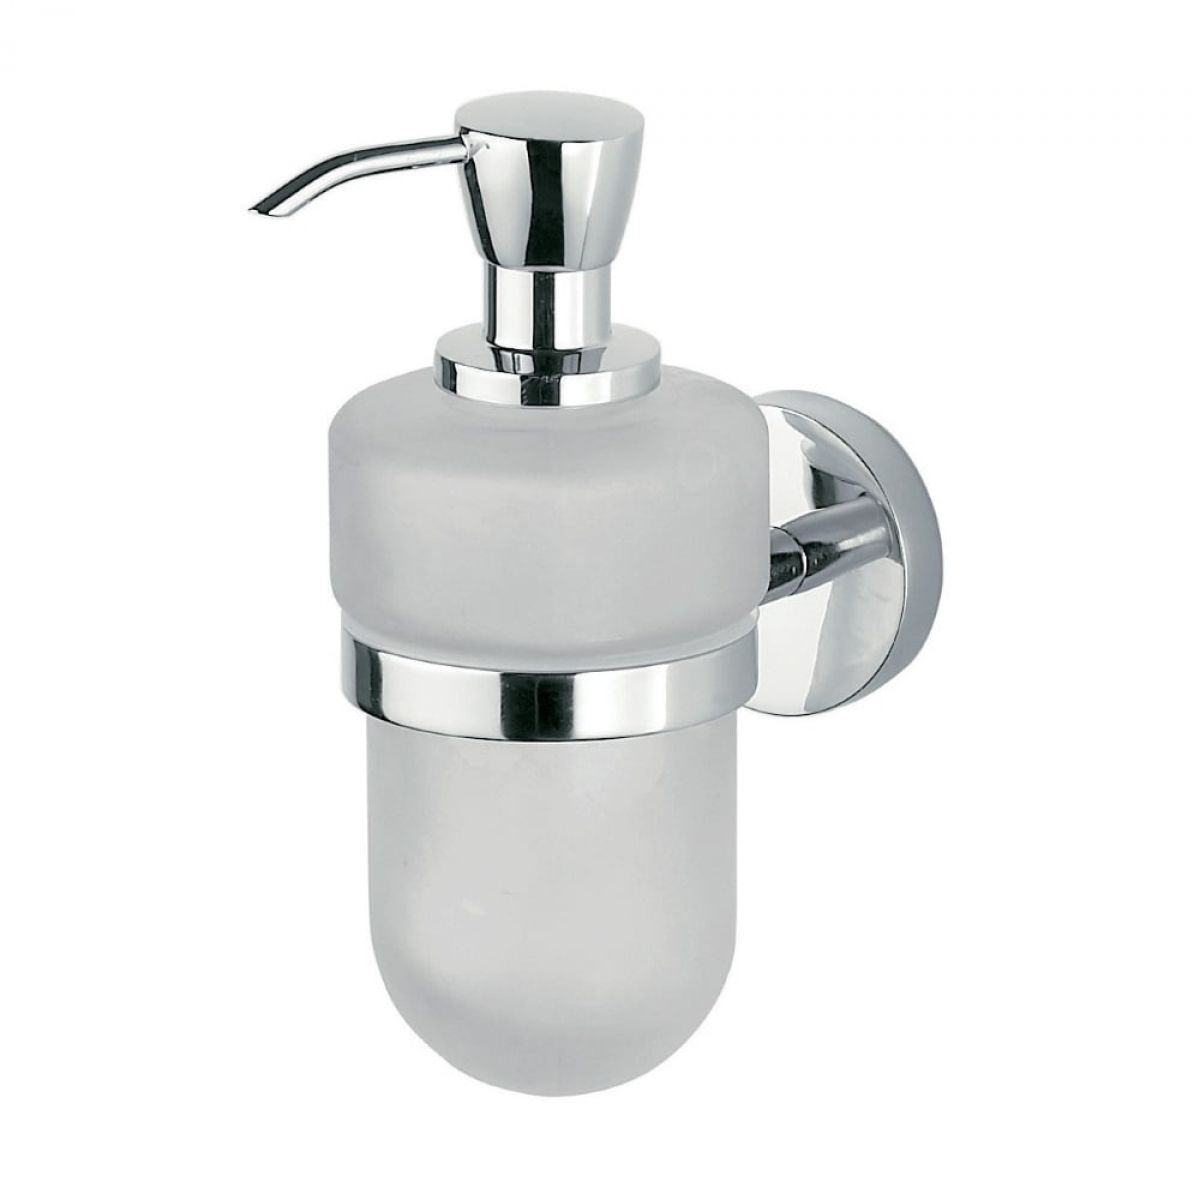 inda forum wall mounted liquid soap dispenser  x h x cm. inda forum wall mounted liquid soap dispenser  x h x cm  uk